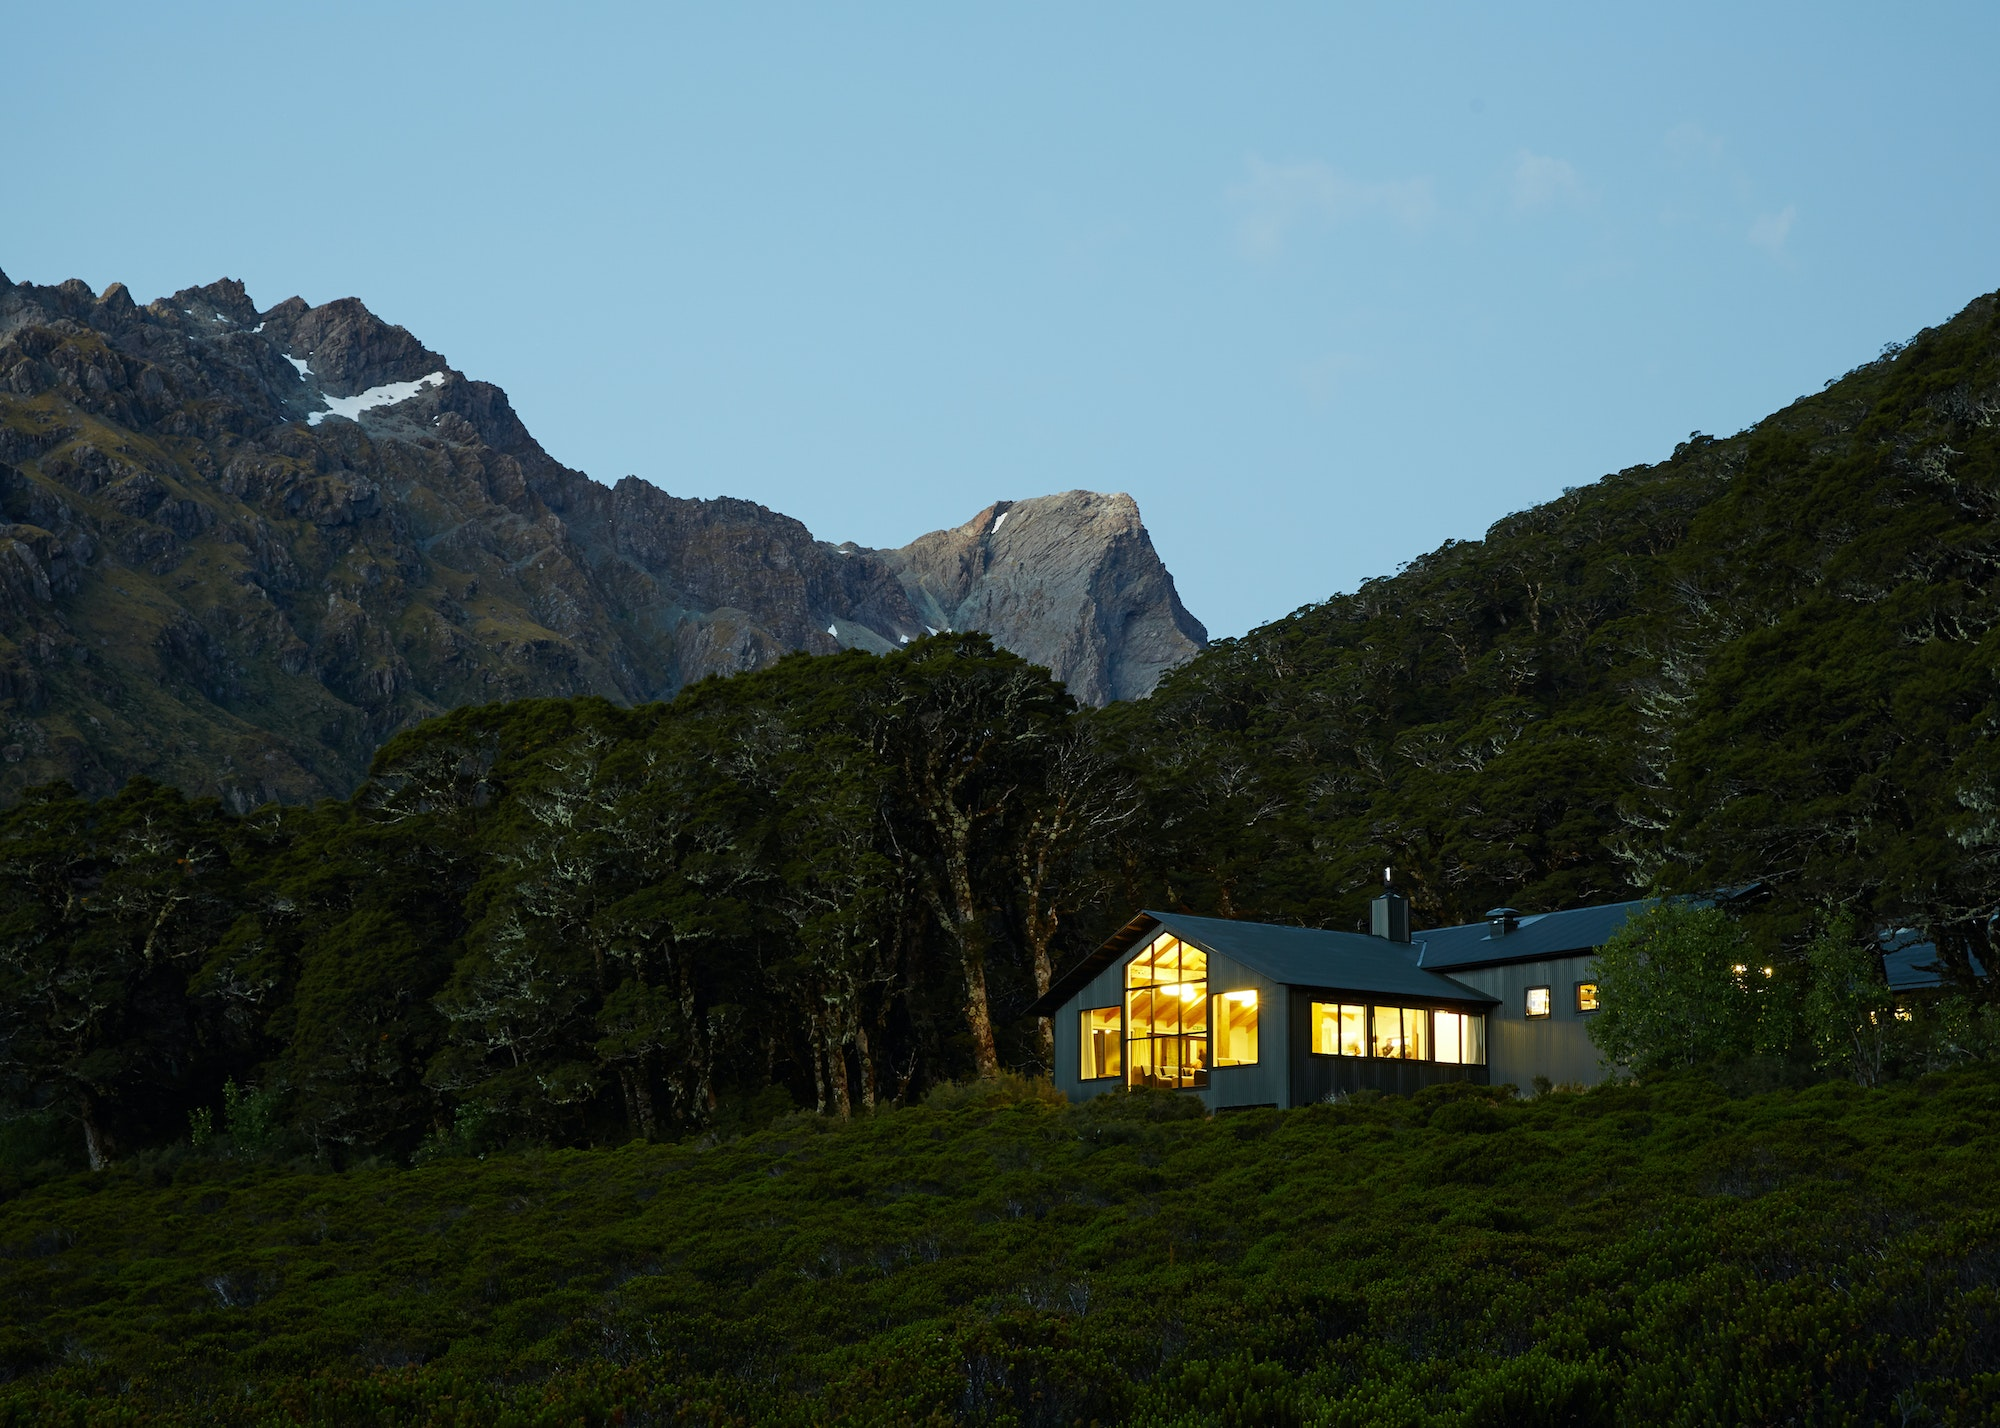 Located along the Routeburn Track, Lake Mackenzie Lodge comes complete with a restaurant, bar, and—best of all—hot showers.